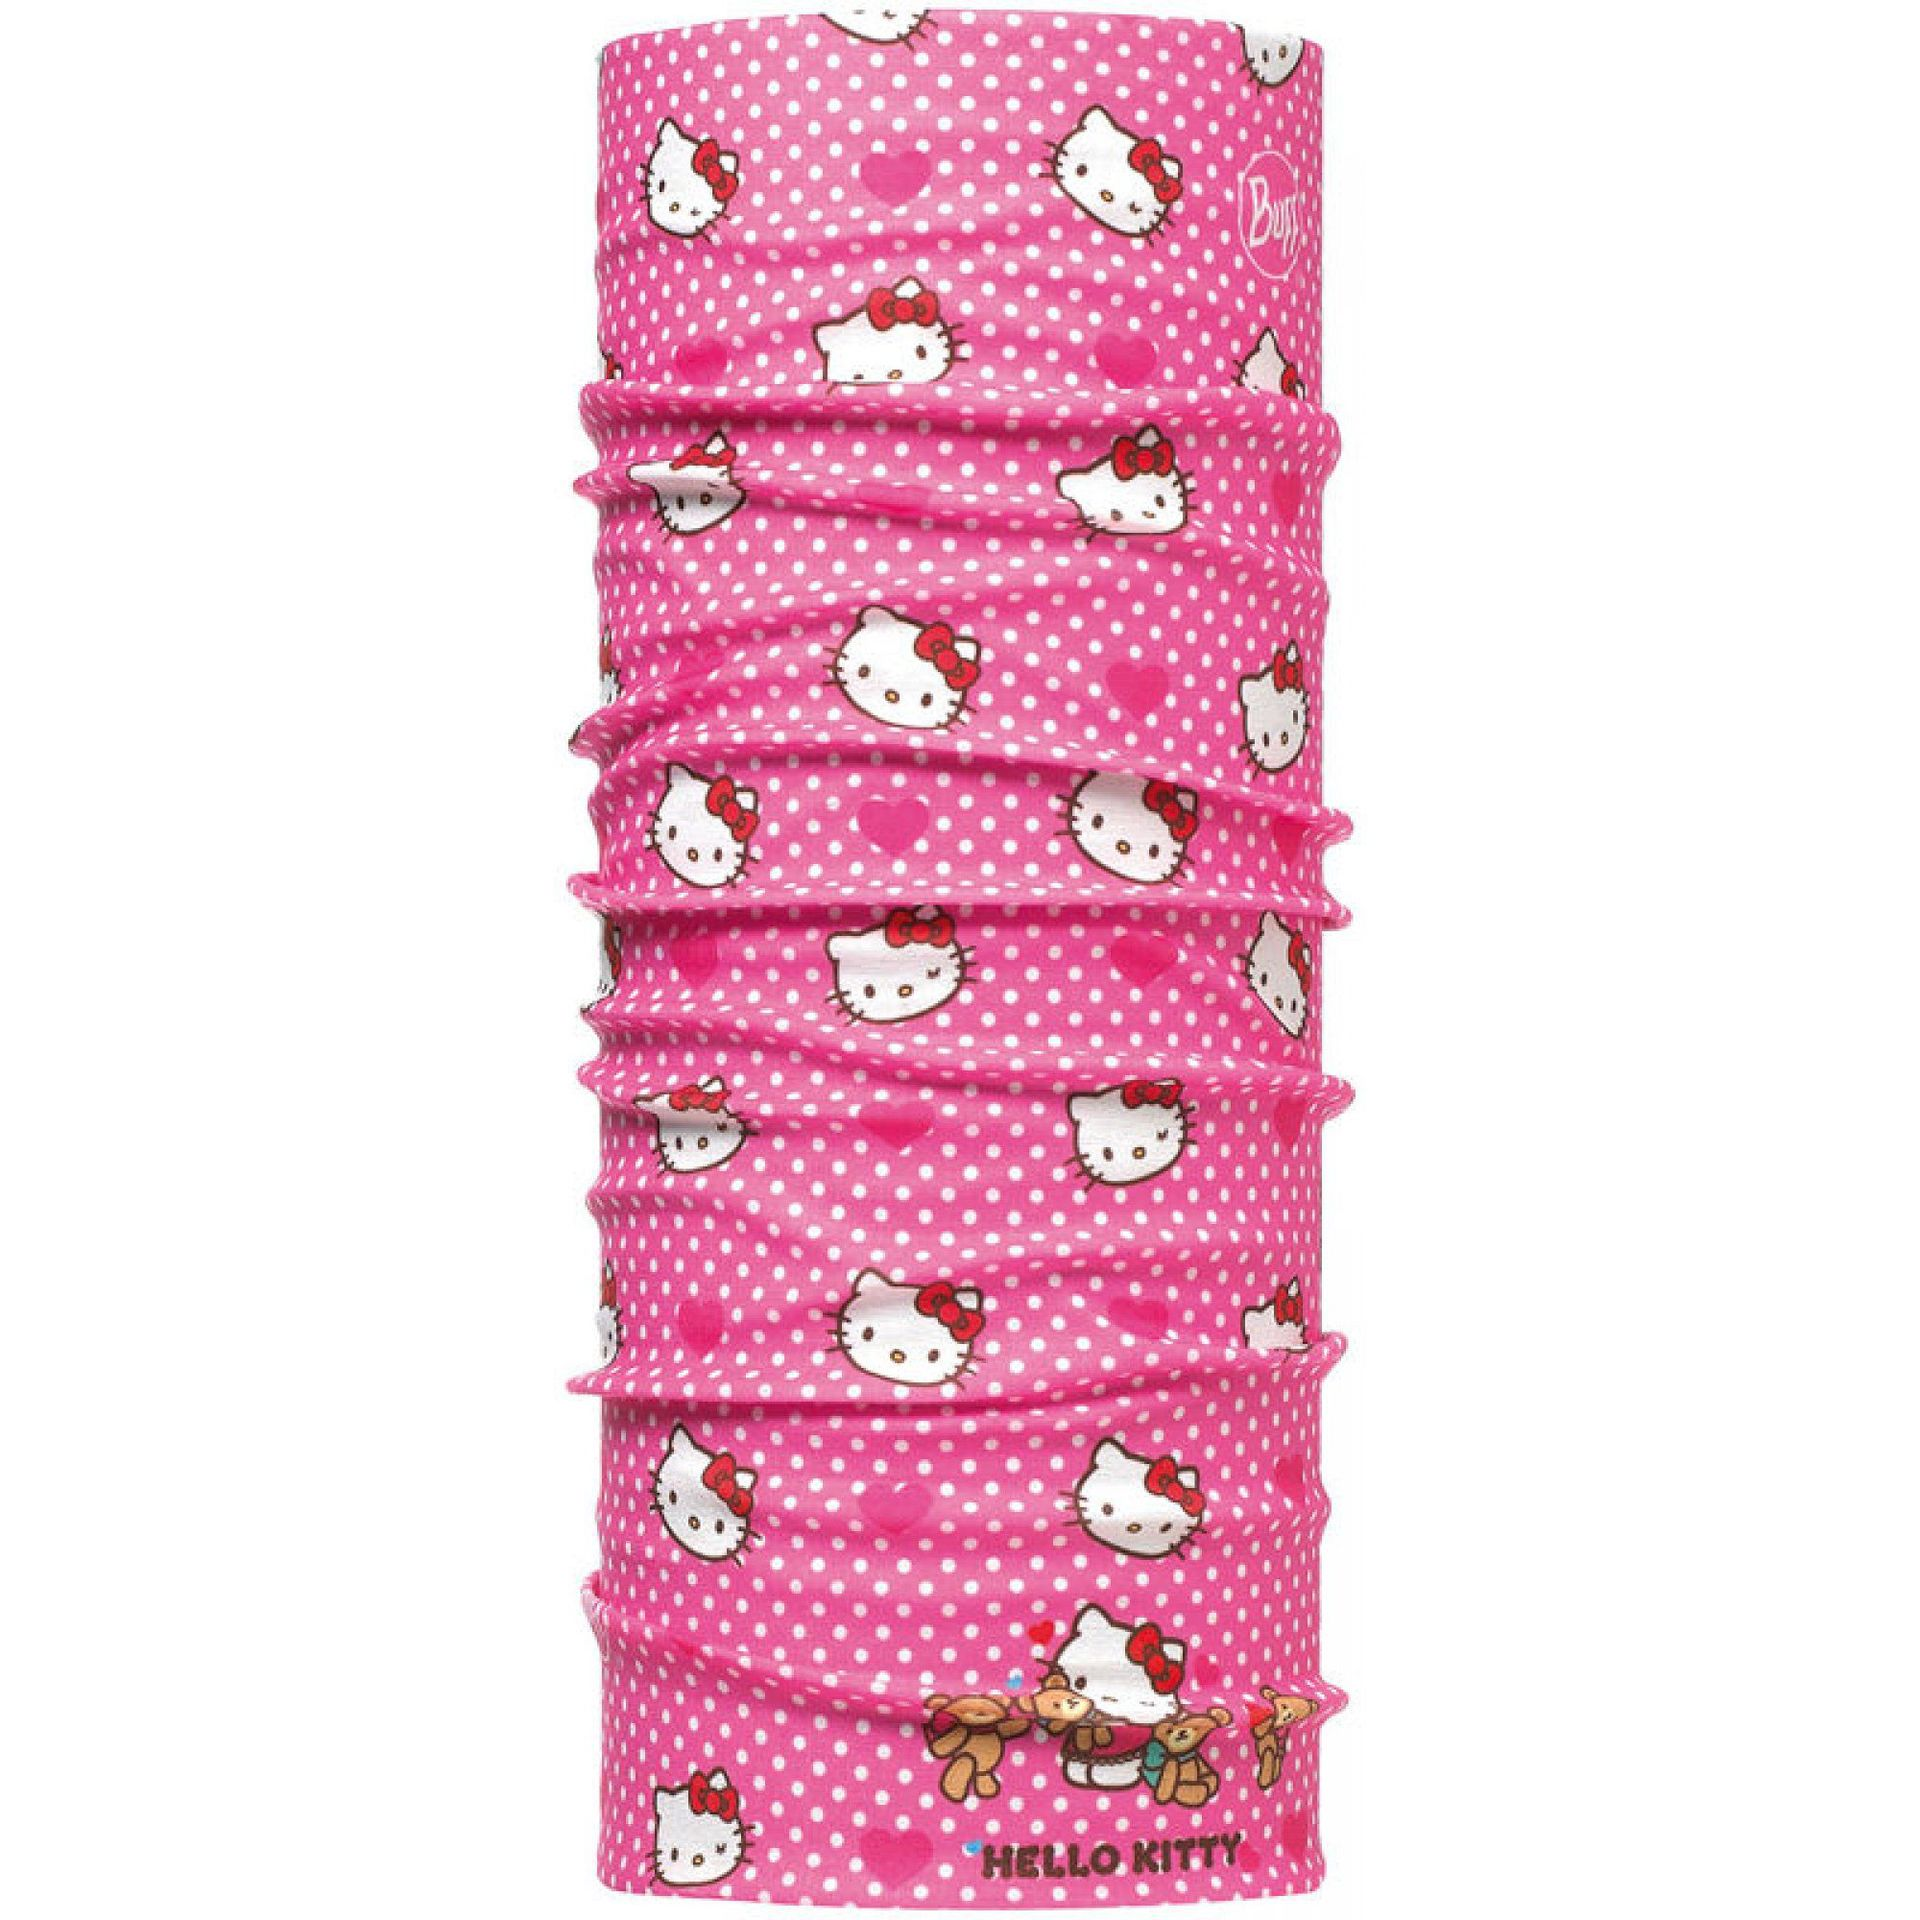 CHUSTA BUFF ORIGINAL CHILD HELLO KITTY HEARTSANDOTS